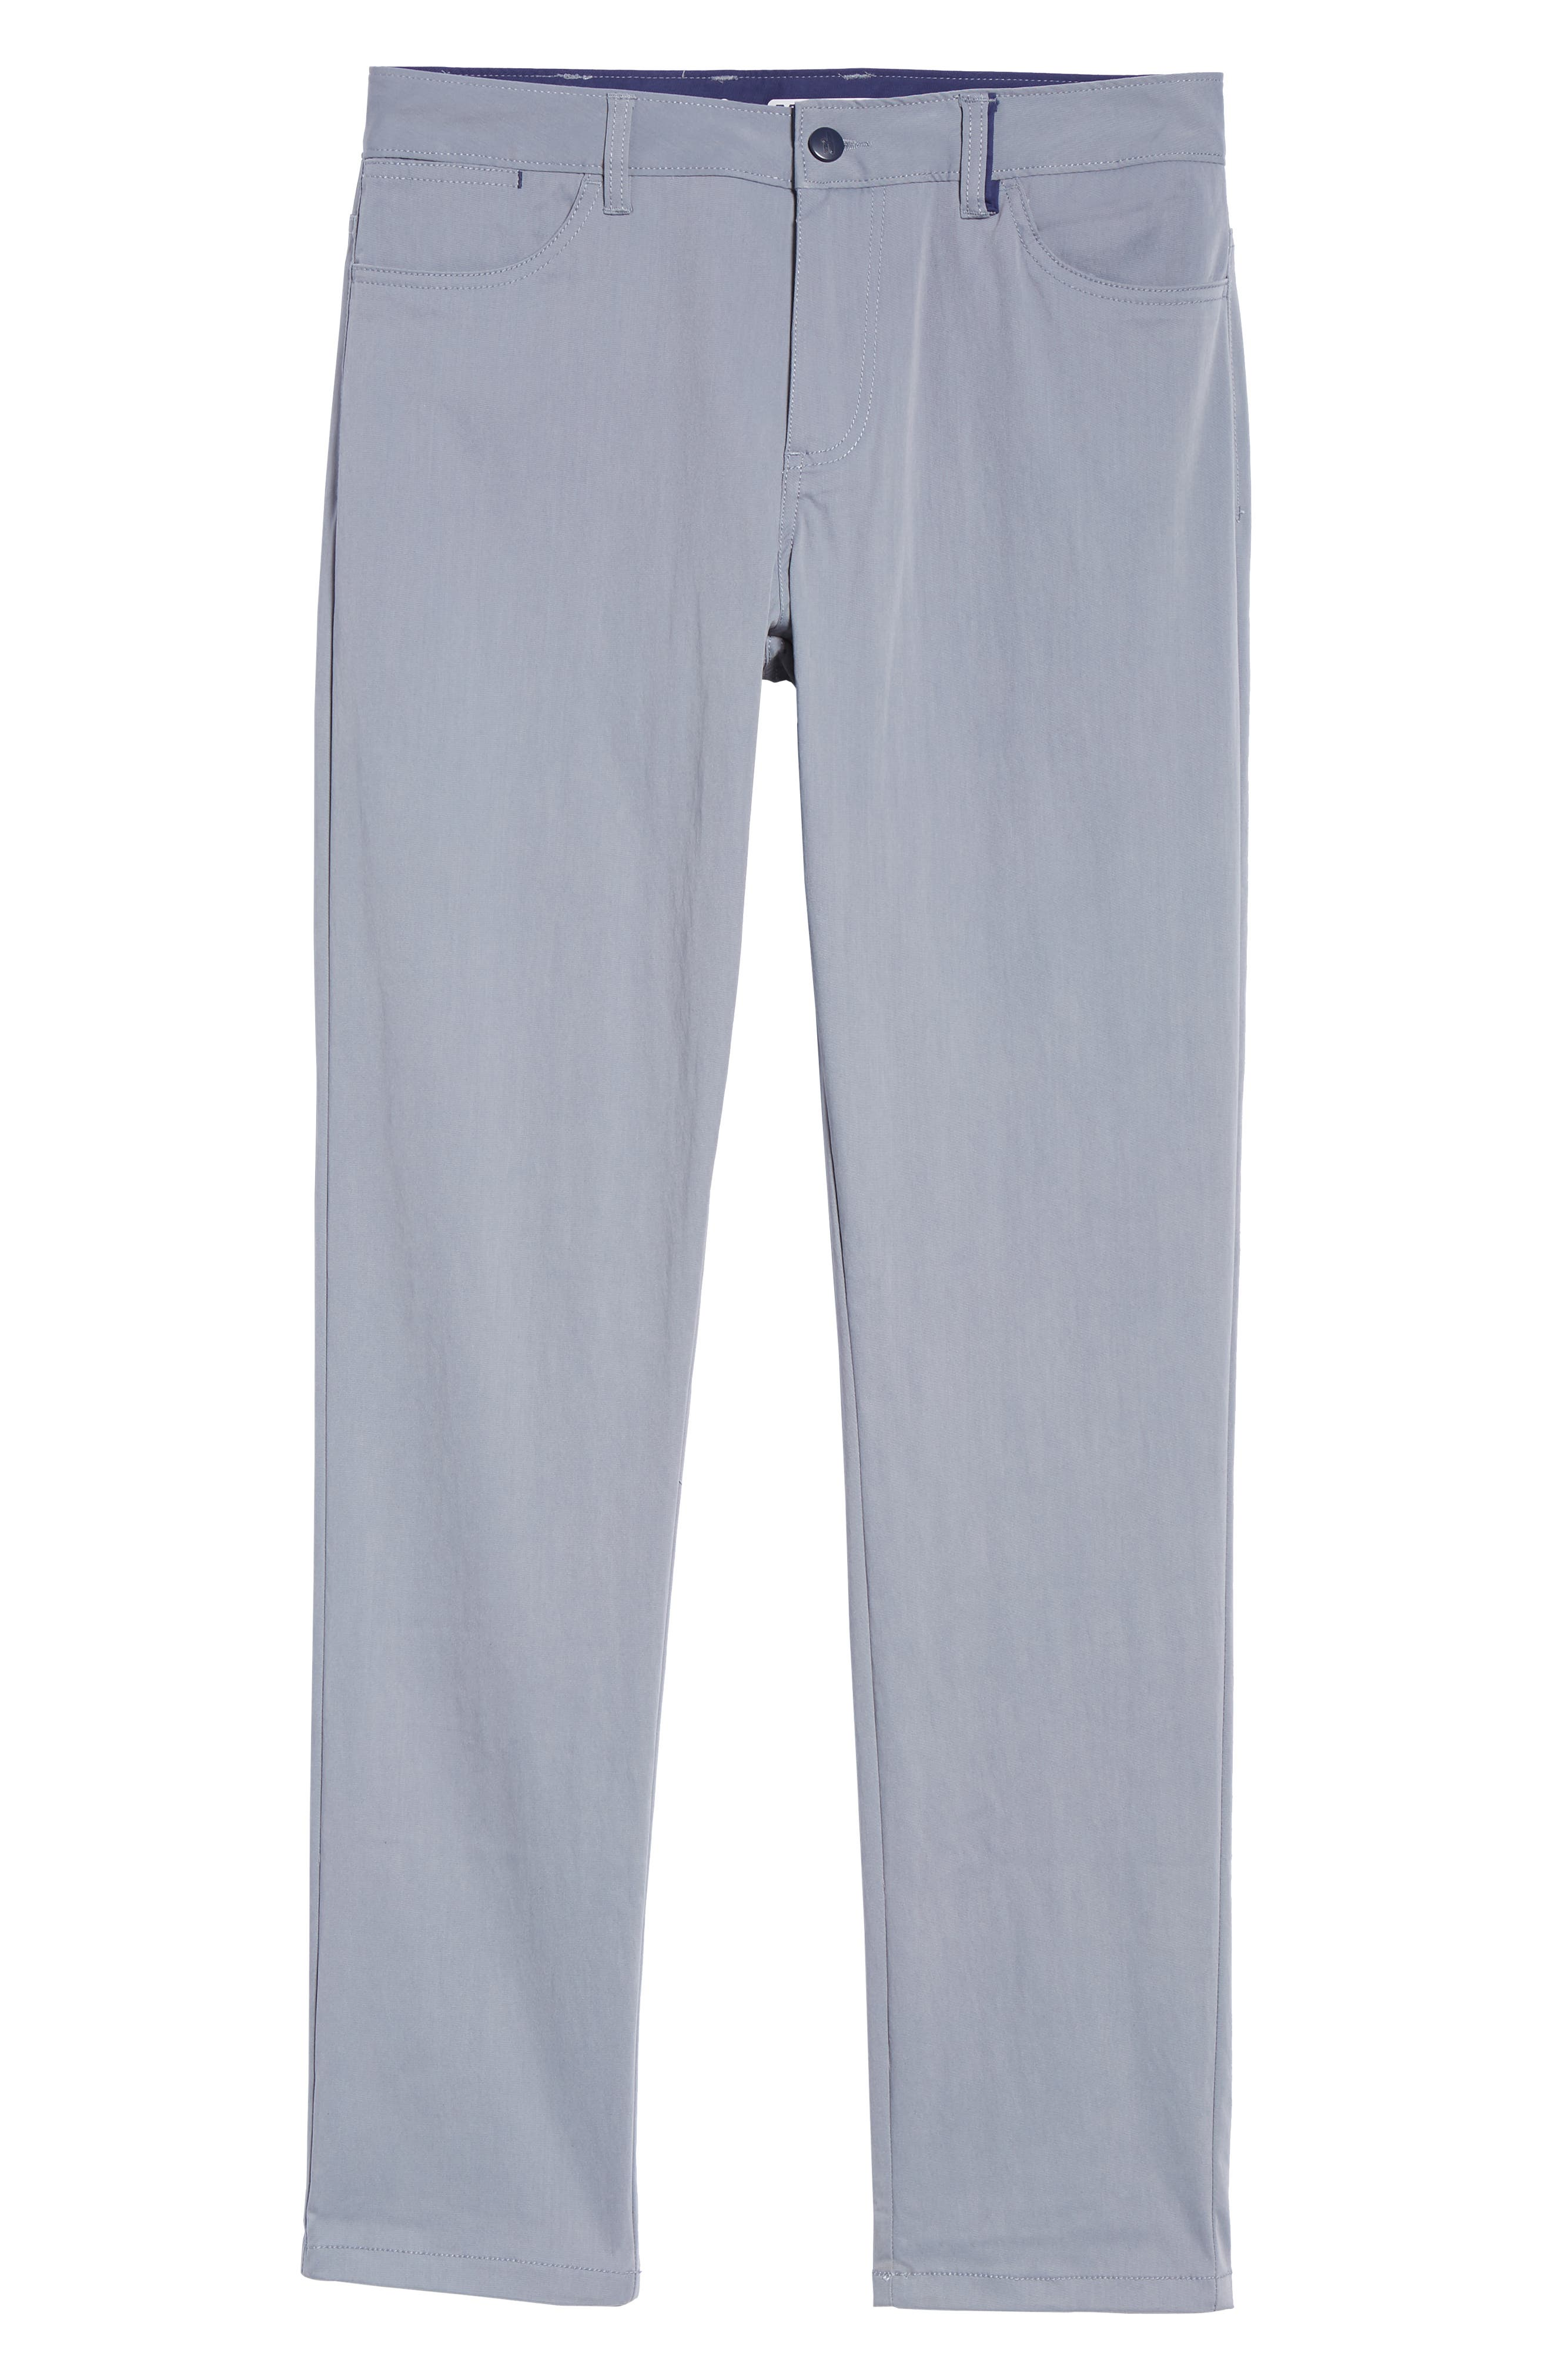 Marin Straight Leg Pants,                             Alternate thumbnail 6, color,                             CLOUDBREAK